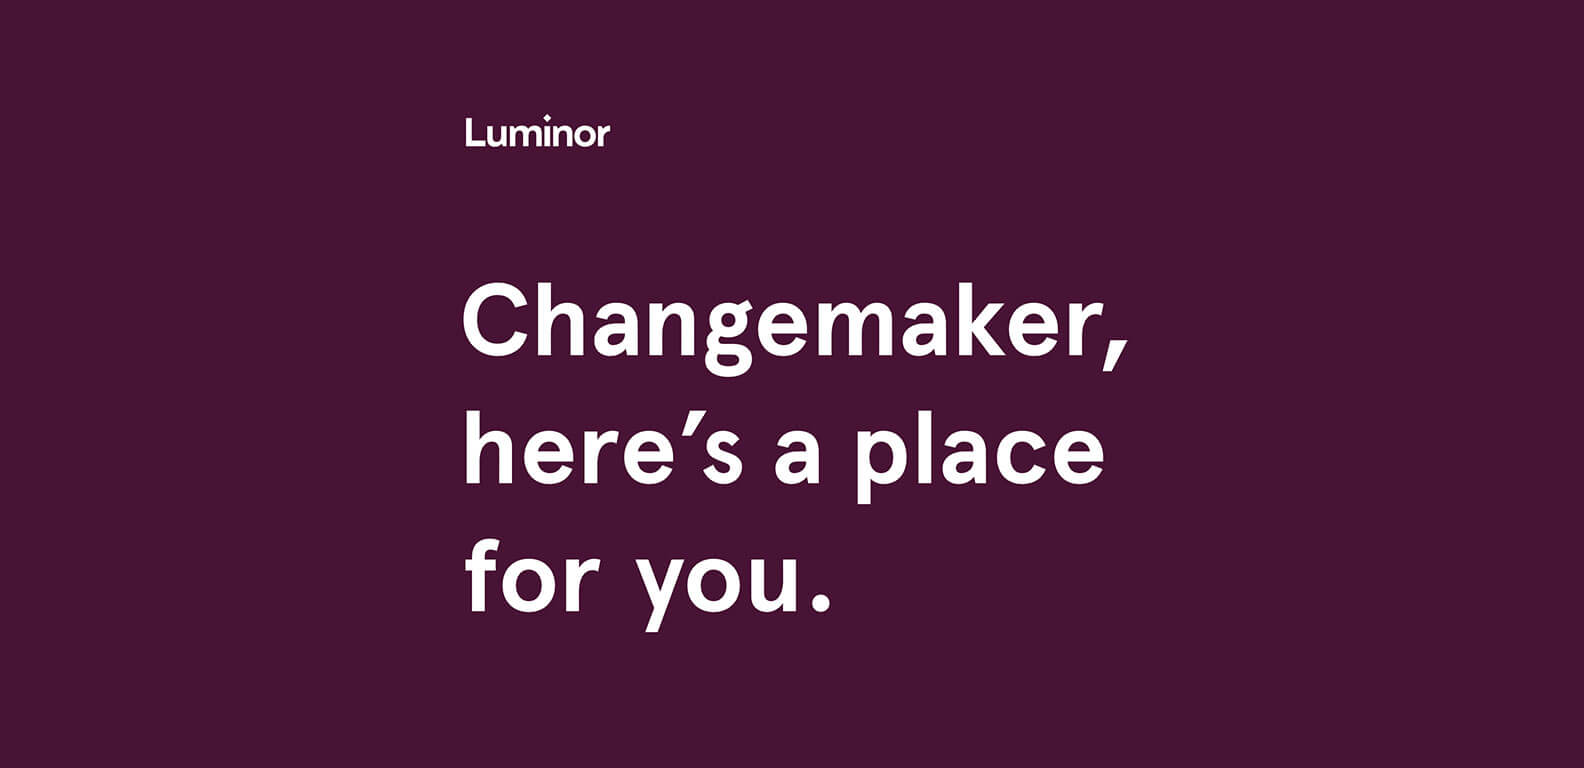 Luminor - recruitment platform